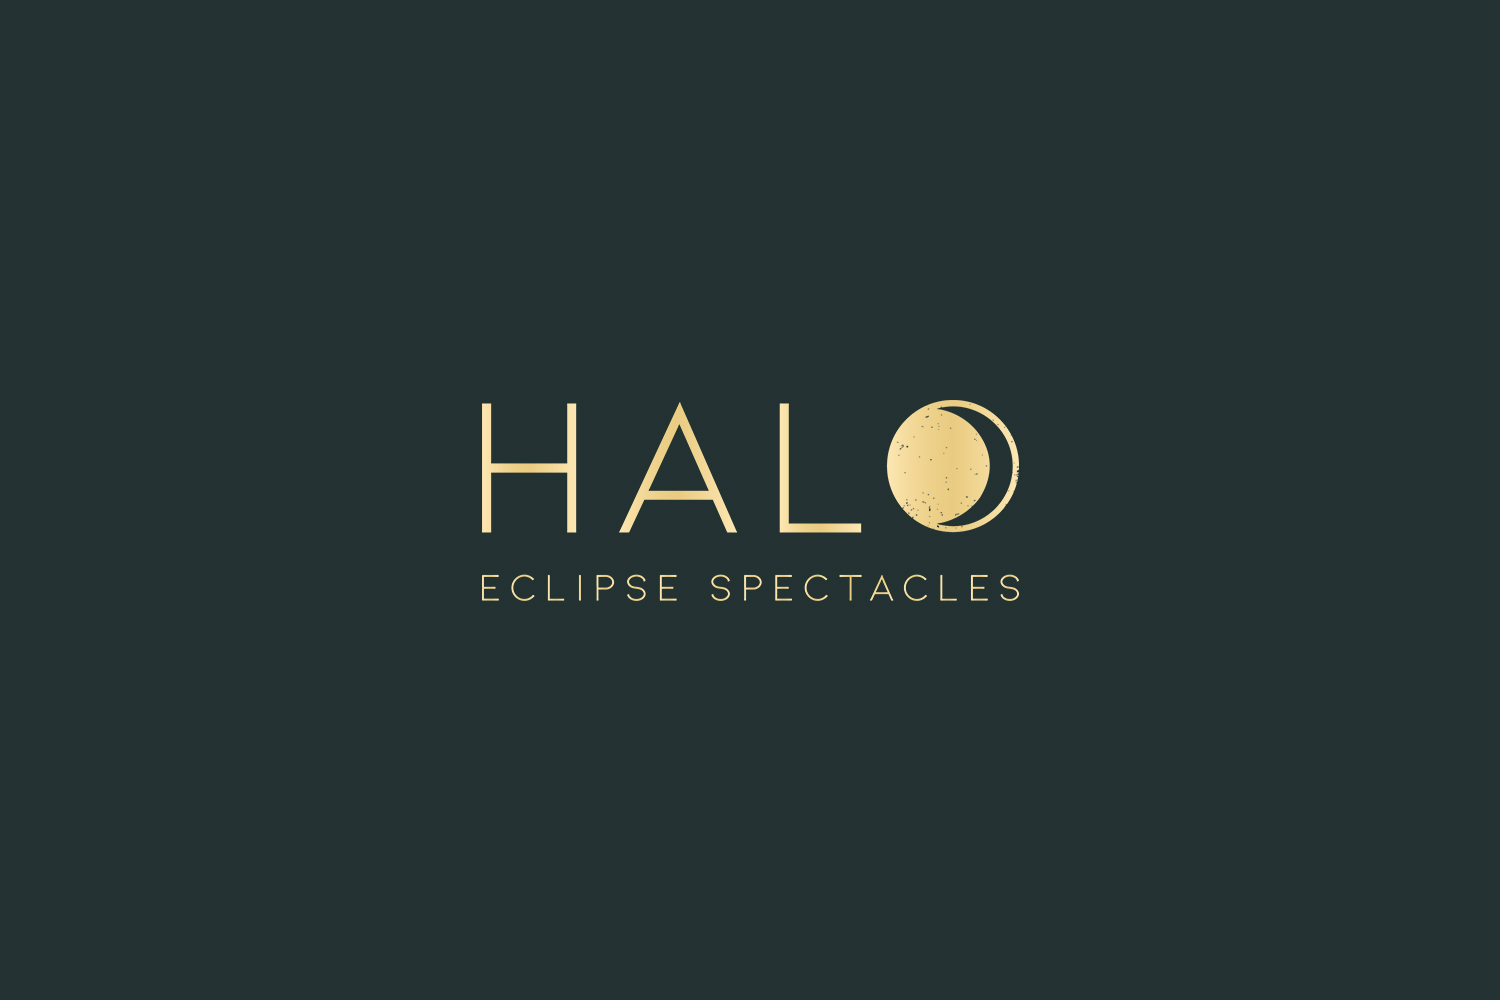 Halo Eclipse - Starter Branding by Emily Banks Creative